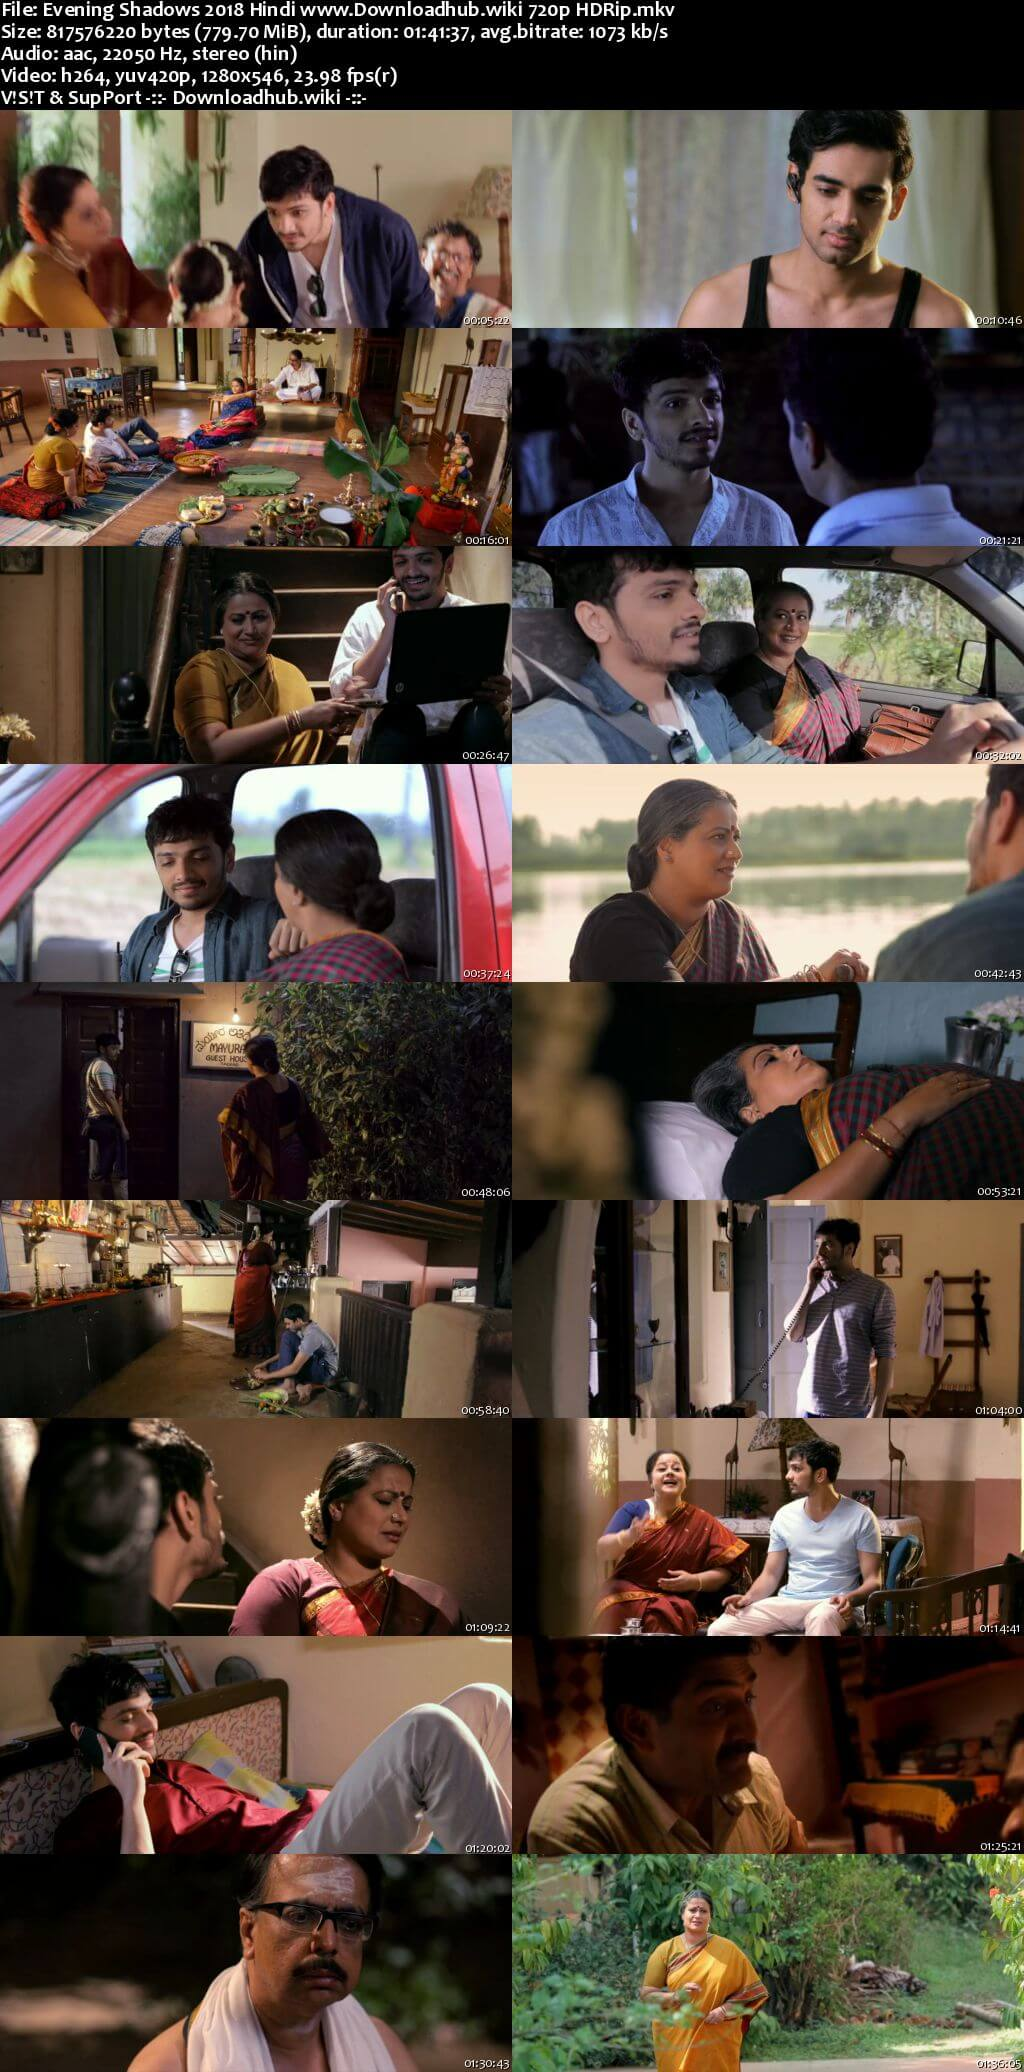 Evening Shadows 2018 Hindi 720p HDRip x264